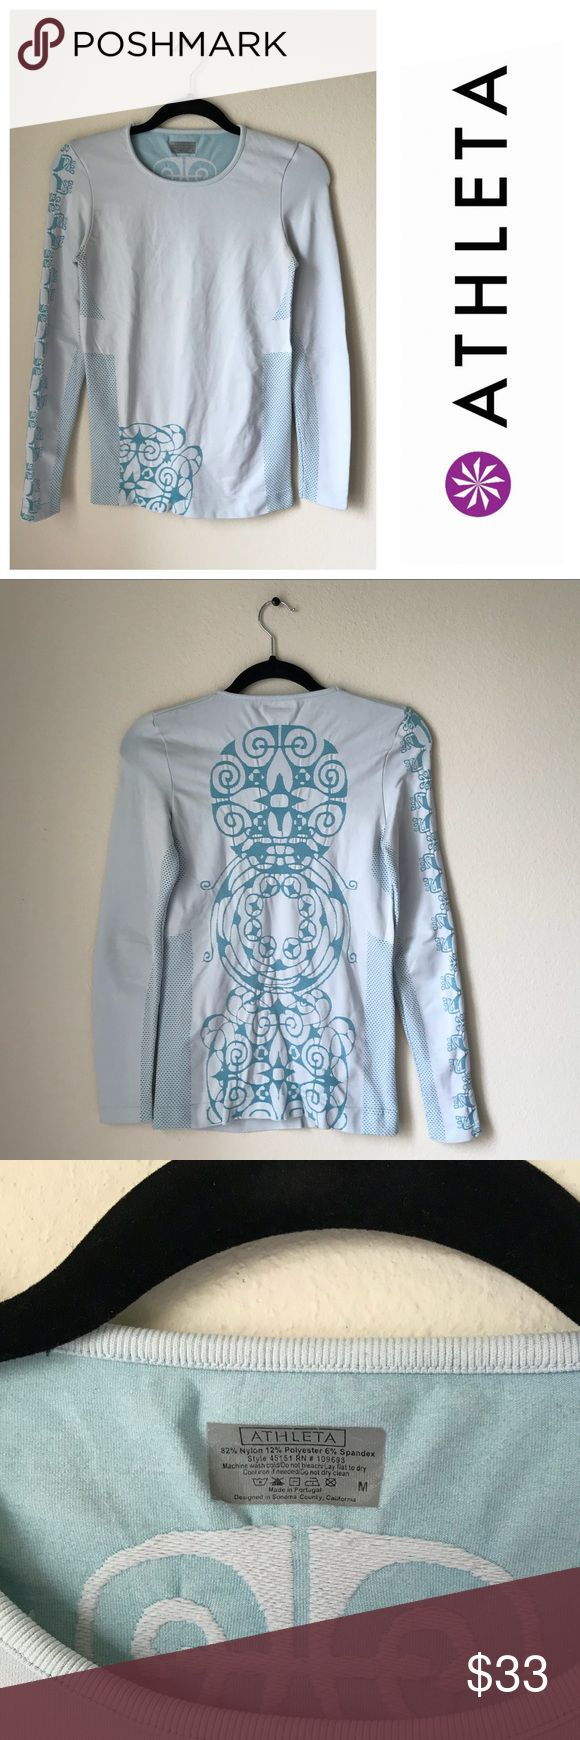 Athleta Long Sleeve Aqua Fitted Gym Top Sporty Athleta Long Sleeve Aqua Fitted Gym Top!  🏃🏽‍♀️ Size M 🏃🏽‍♀️ light pastel blue & teal coloring 🏃🏽‍♀️ thick & stretchy material  🏃🏽‍♀️ cool tribal/floral design down back & sleeve 🏃🏽‍♀️ fitted cut 🏃🏽‍♀️ crew neck  Materials  82% Nylon  12% Polyester  6% Spandex Athleta Tops